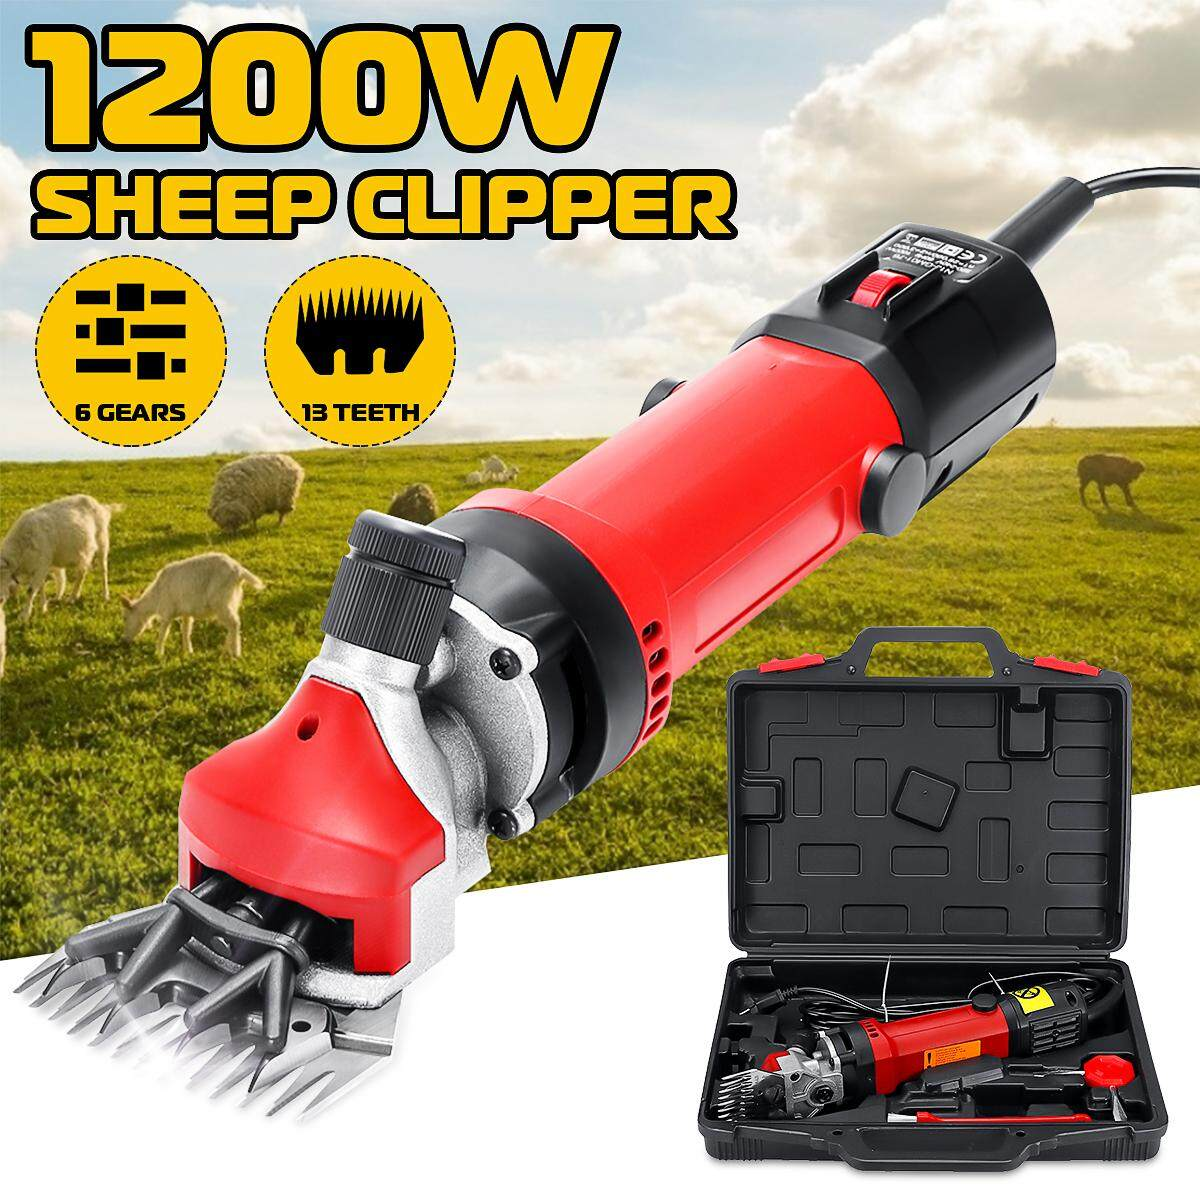 1200W 2800 rpm 13 Teeth Electric Sheep Goats Shearing Sheep Wool Clipper Trimmer Shears Animal Cutter Adjustable 6 Speed